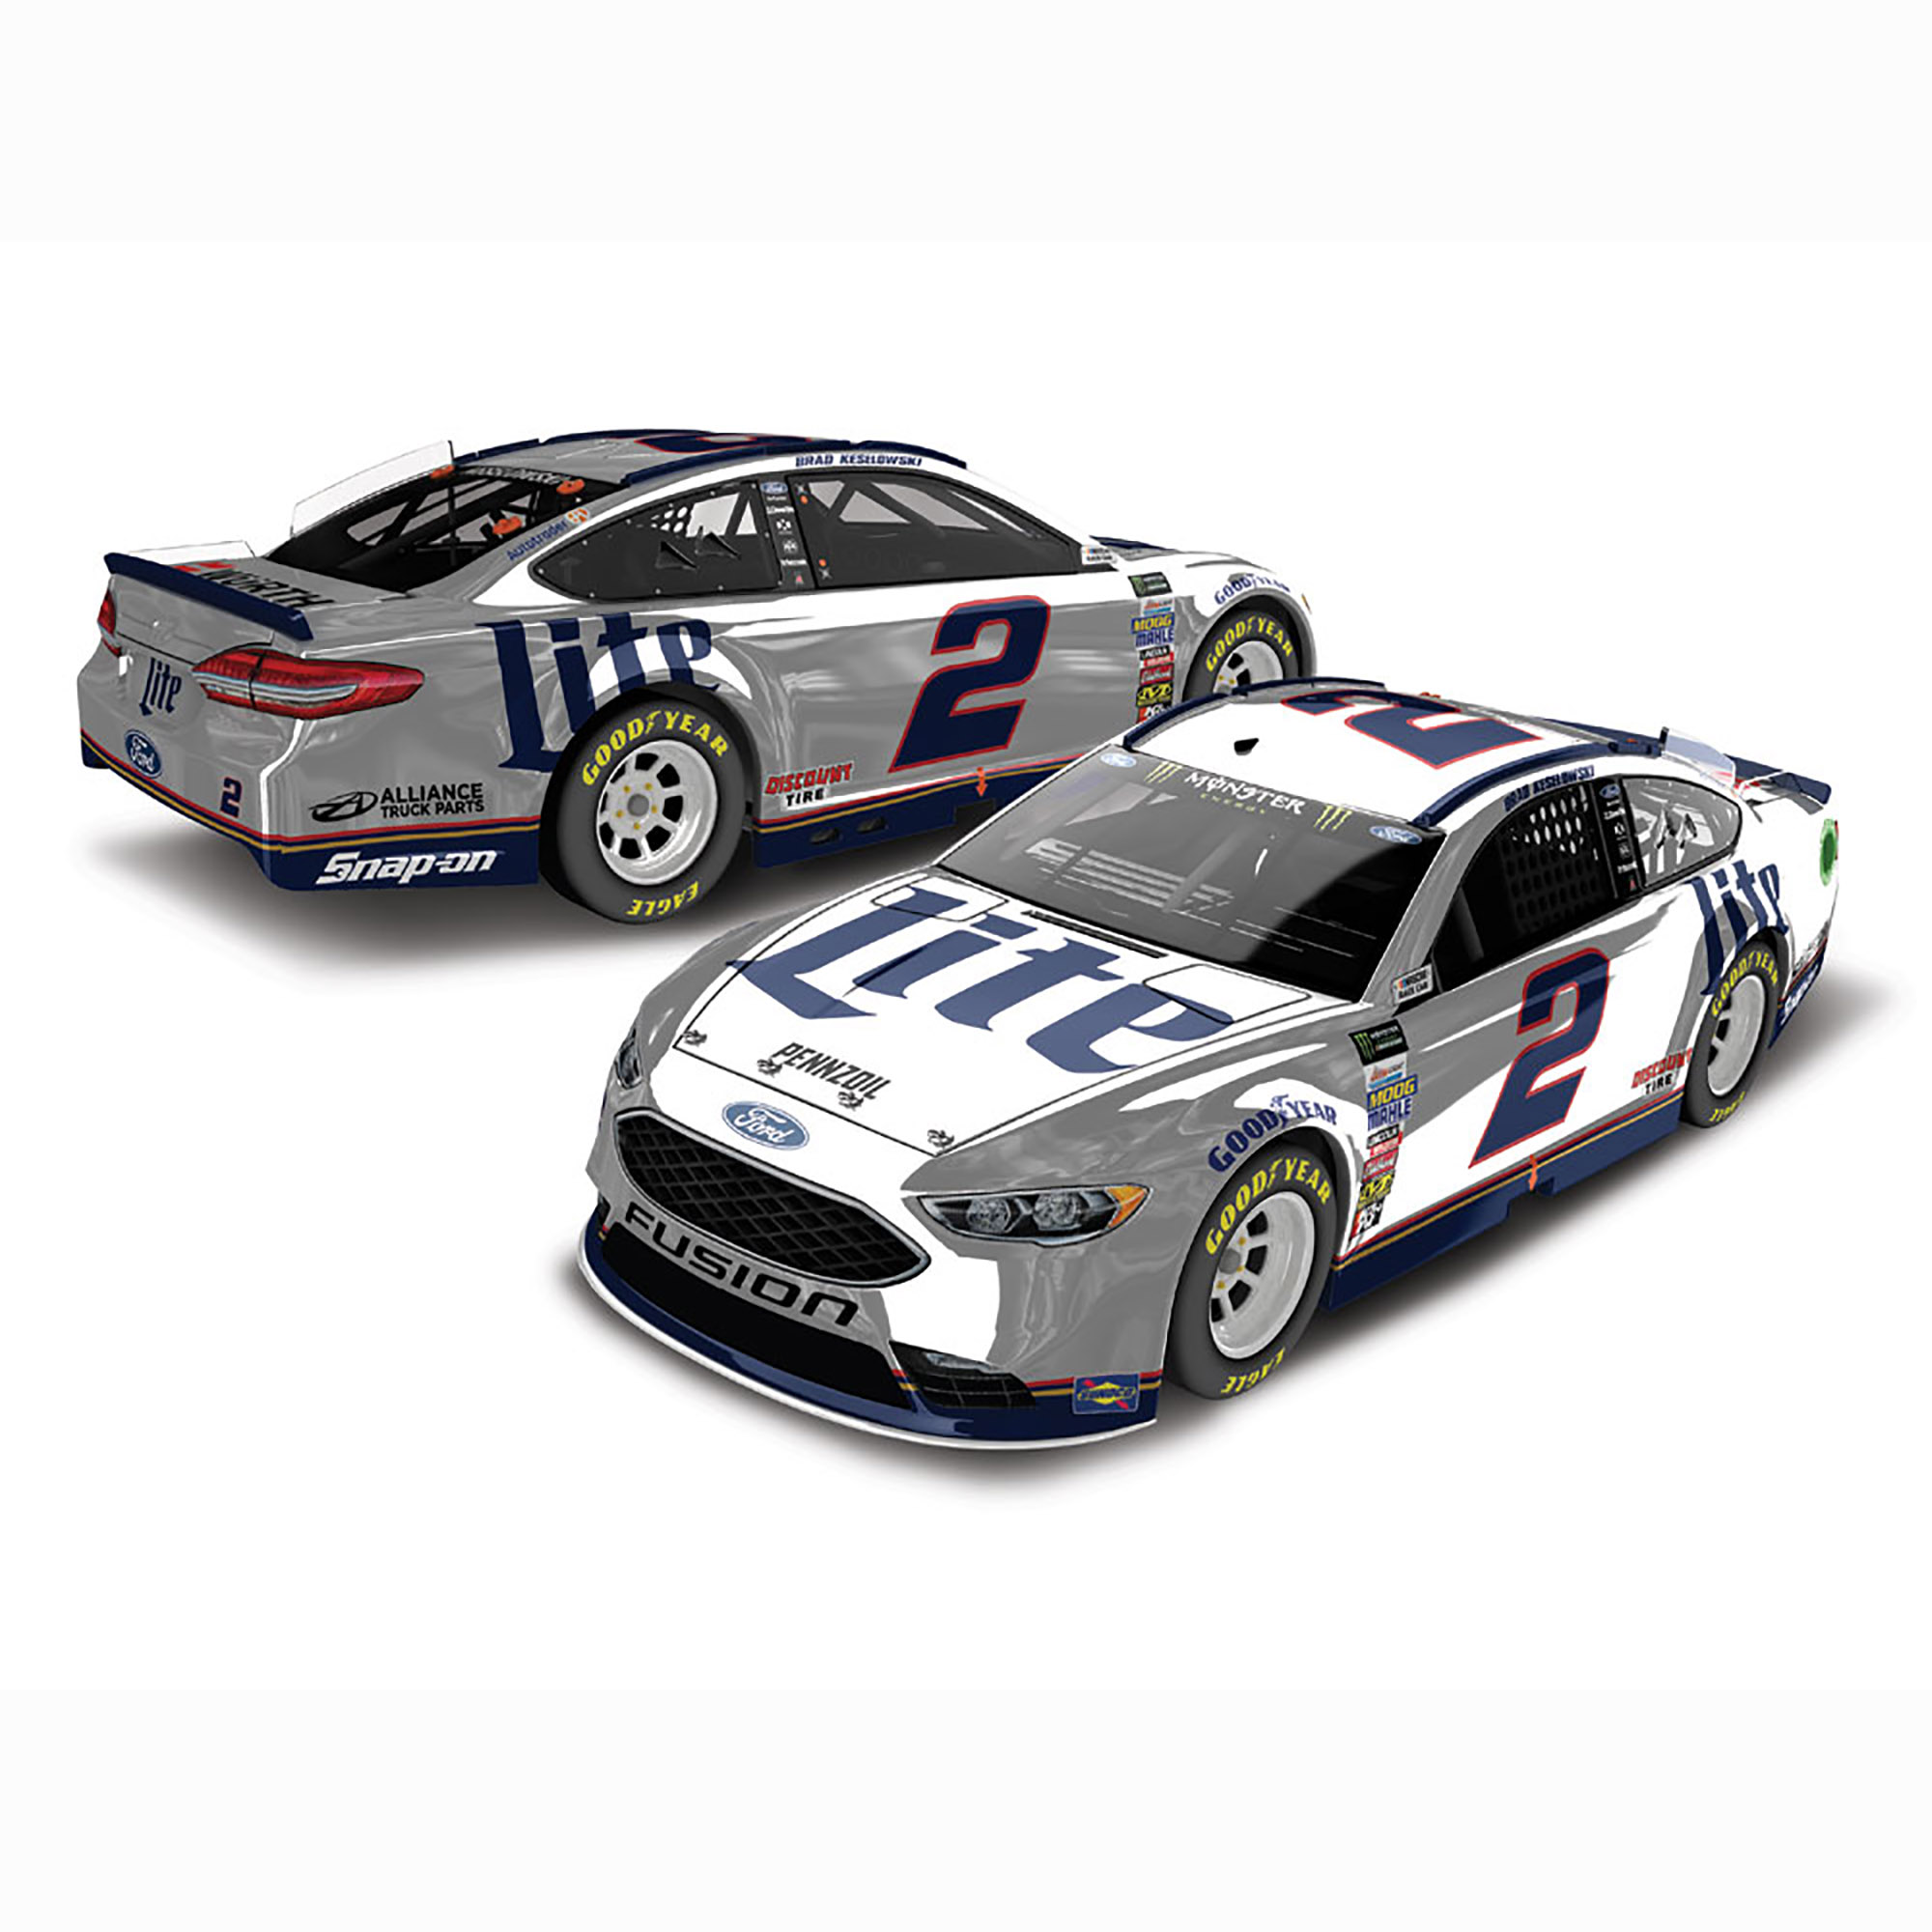 Lionel Racing Brad Keselowski #2 Miller Lite 2018 Ford Fusion 1:24 HO Color Chrome Die-cast